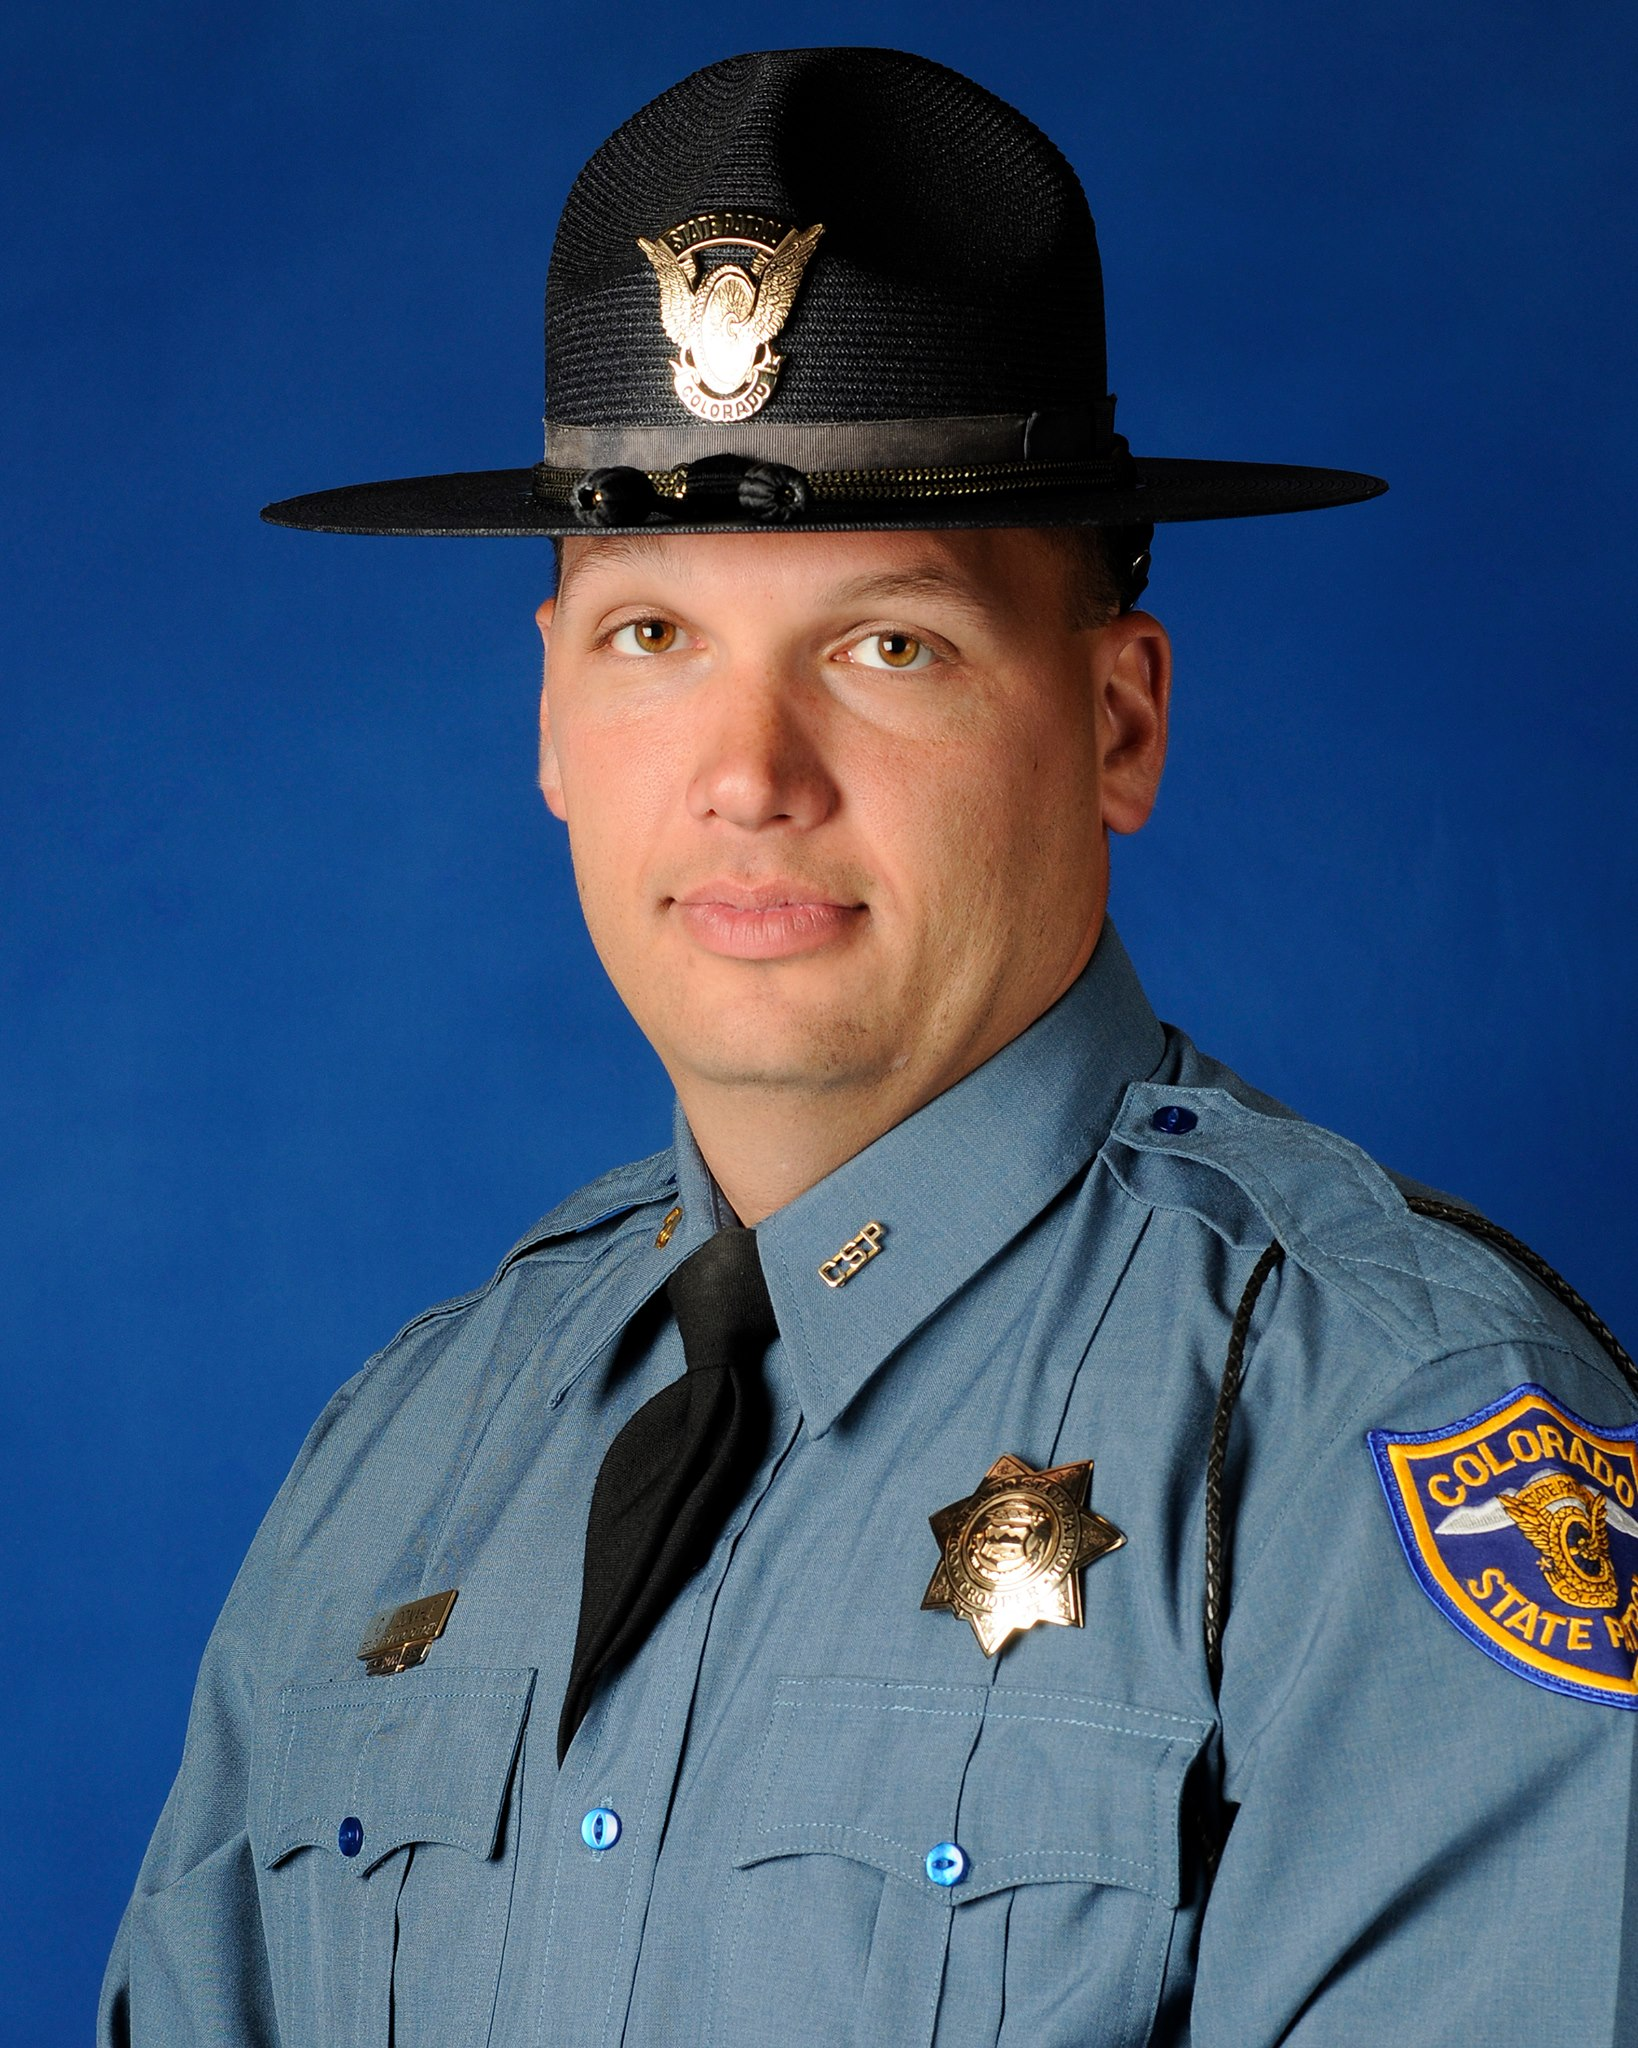 Trooper Cody James Donahue | Colorado State Patrol, Colorado